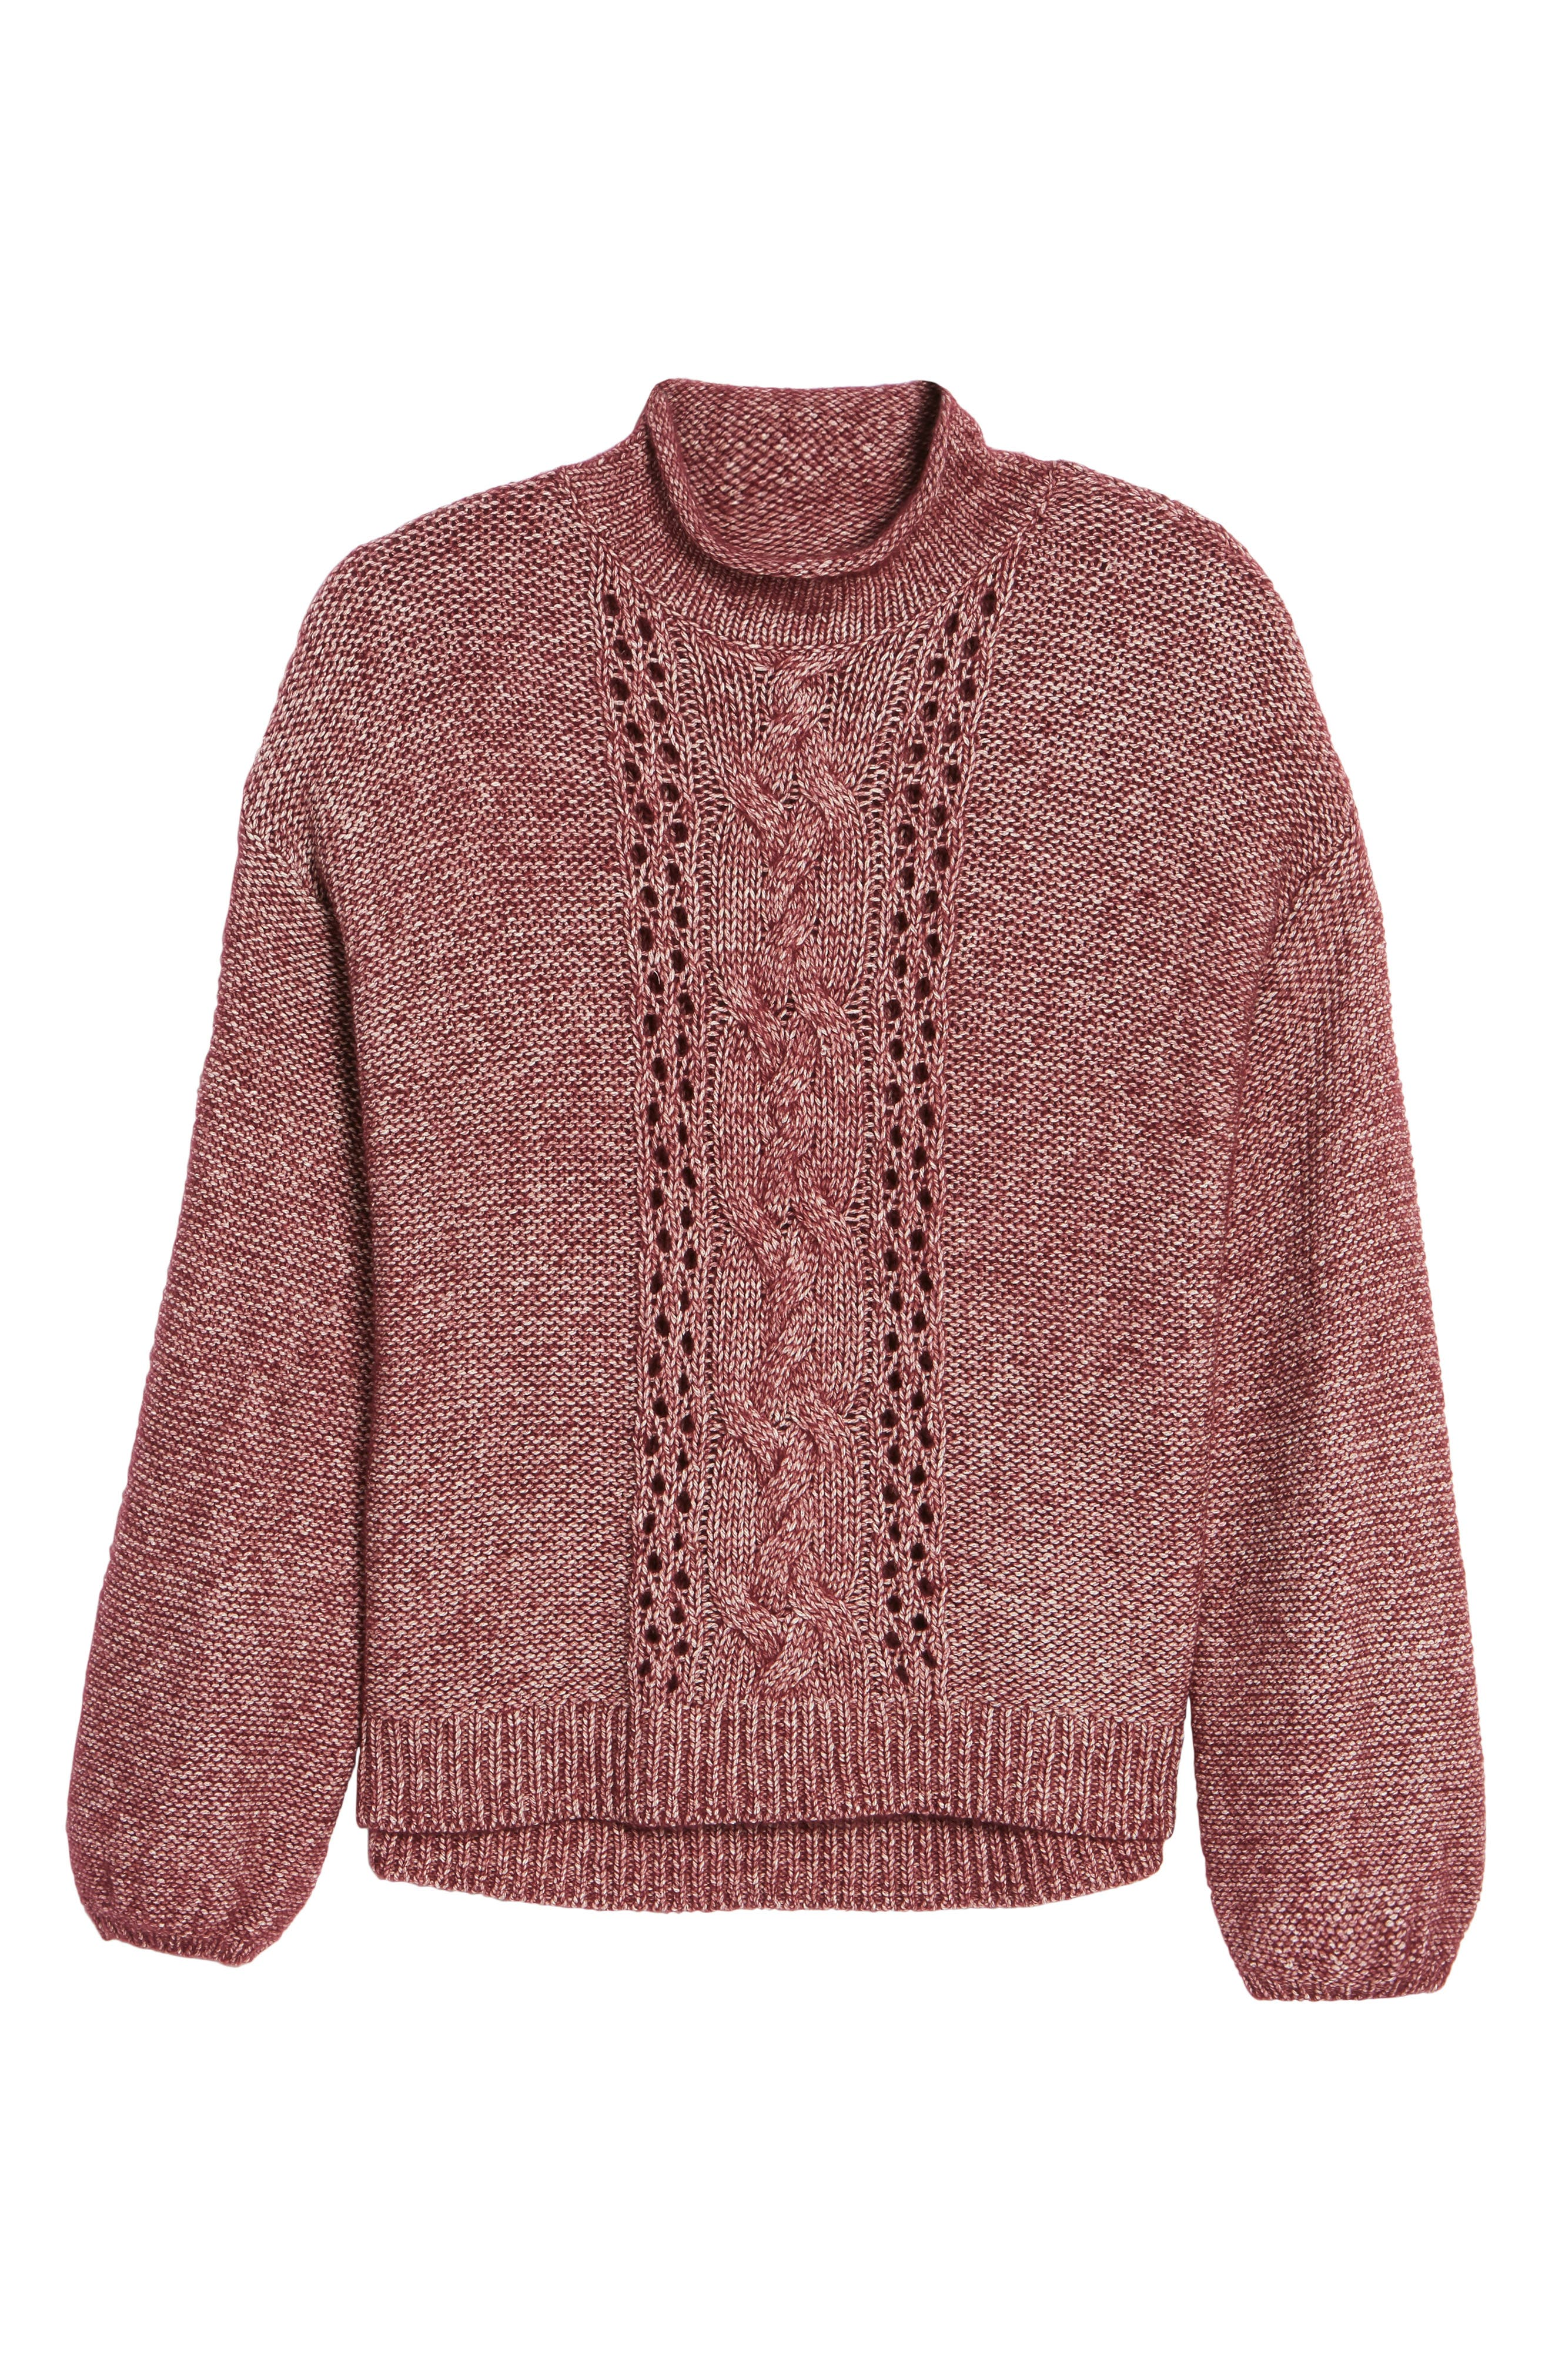 Open Cable Knit Funnel Neck Sweater,                             Alternate thumbnail 6, color,                             Burgundy